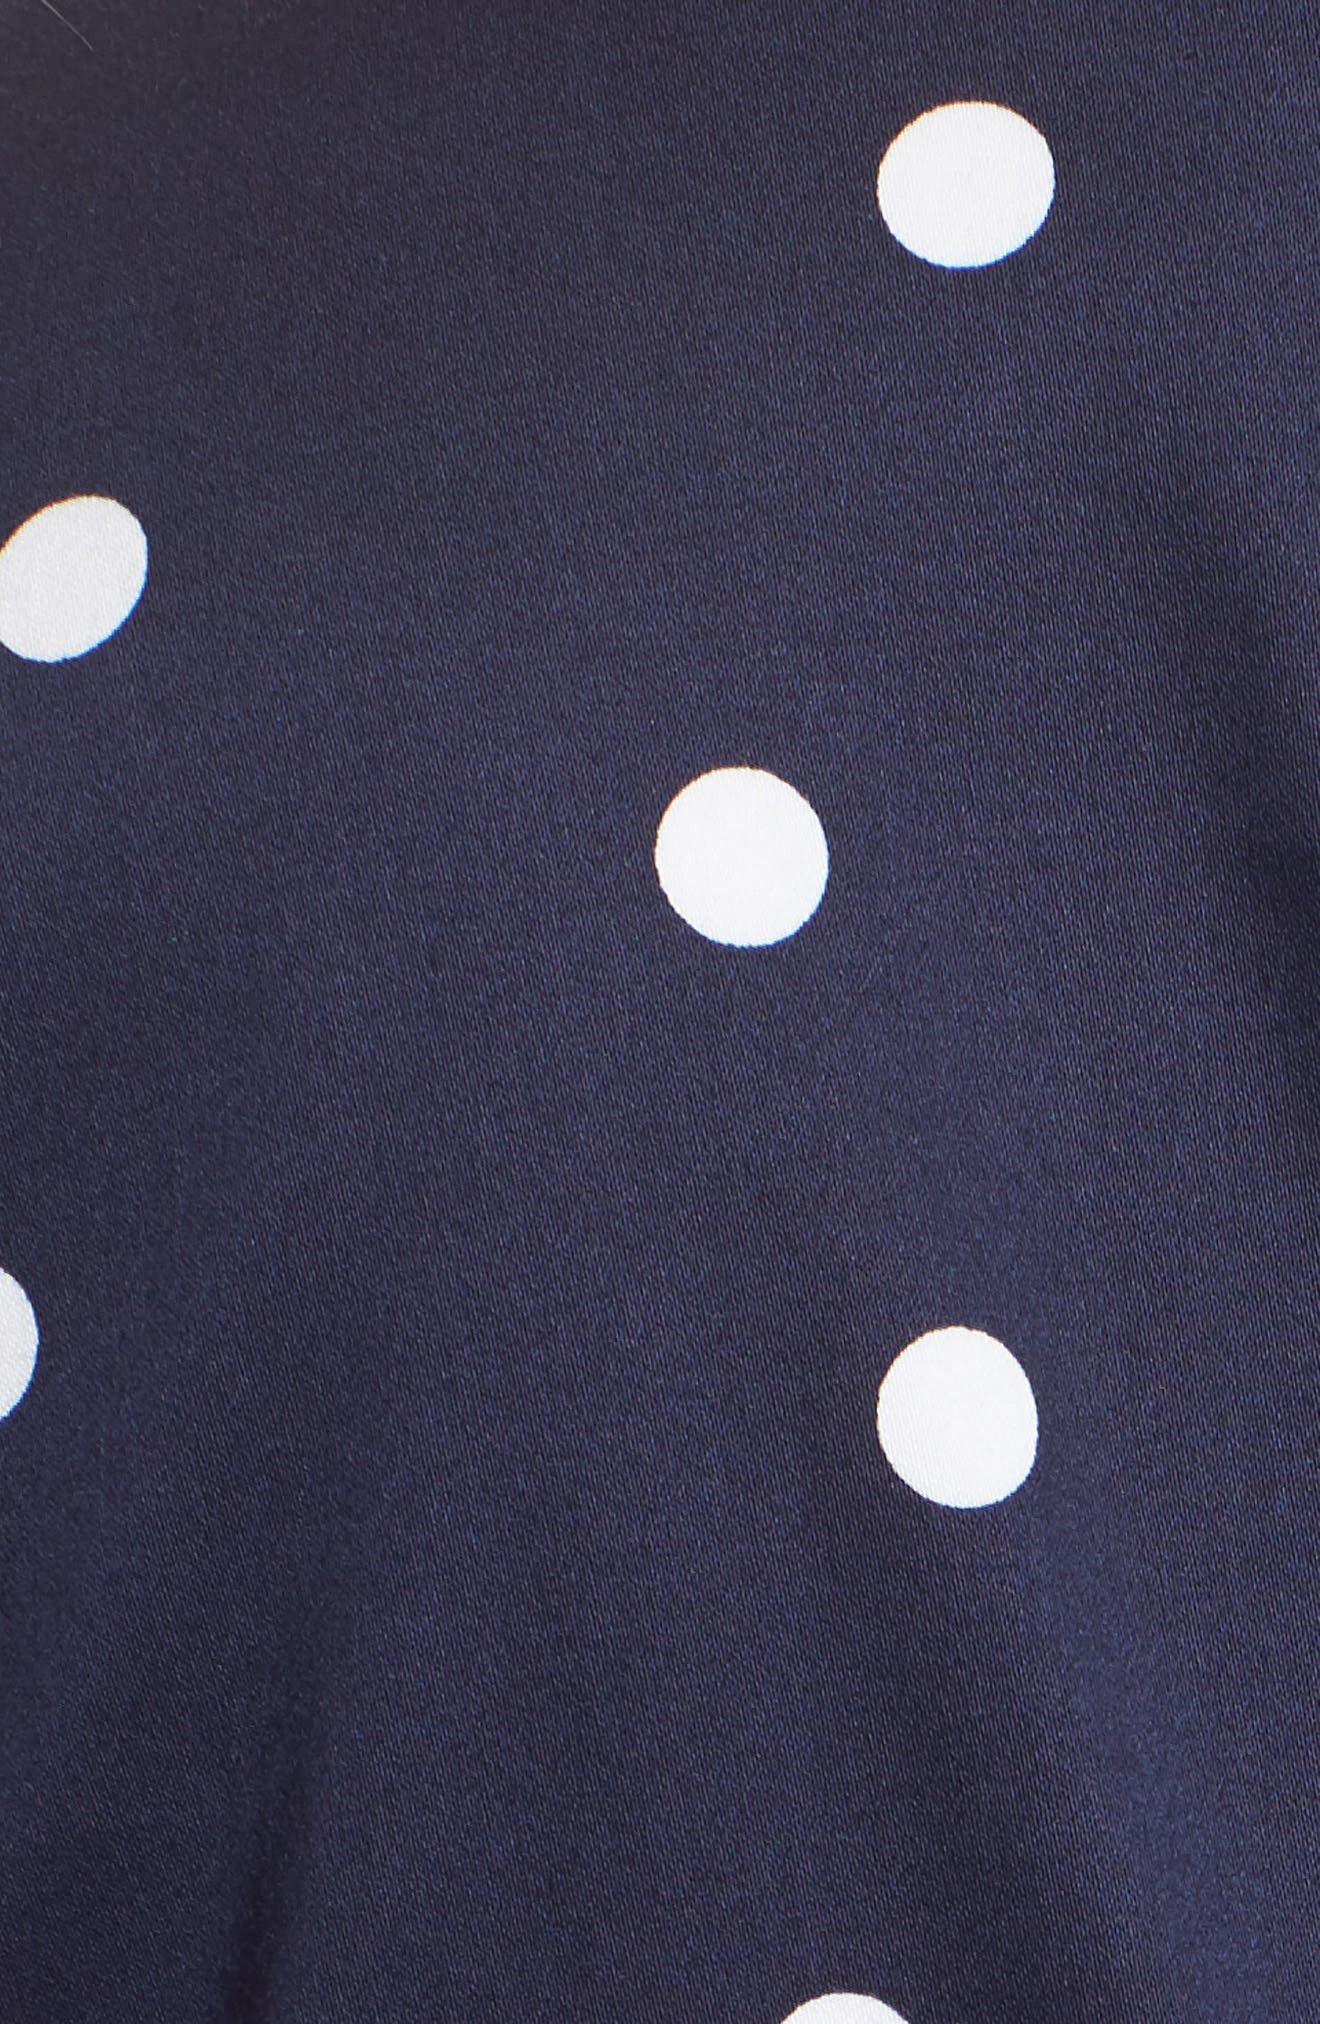 New York Scattered Dot Notch Collar Dress,                             Alternate thumbnail 5, color,                             Breton Blue/ Optic White